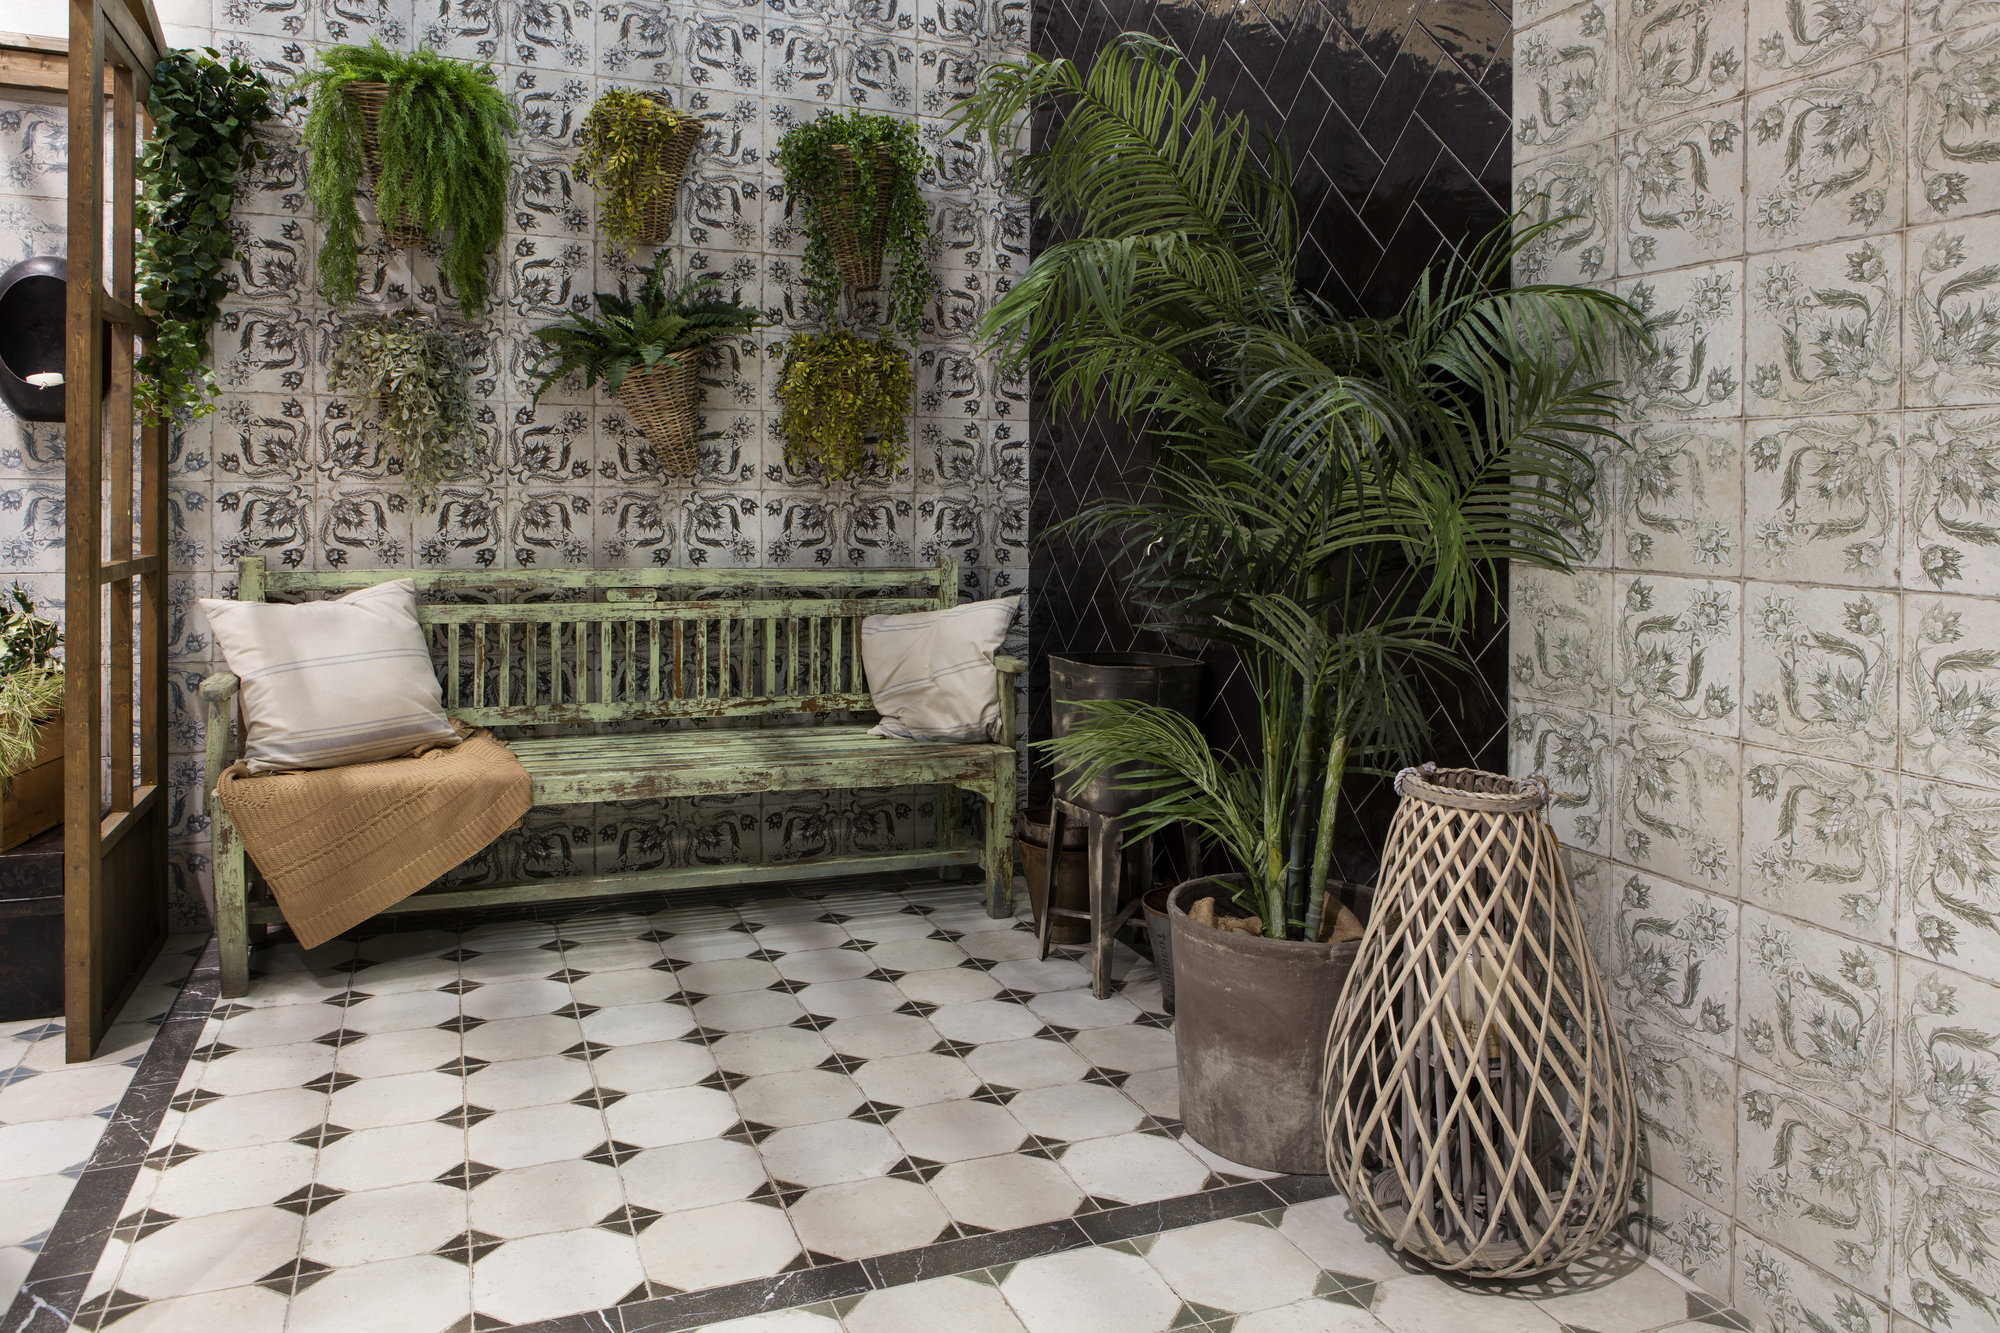 Vintage ceramic tile with geometrical pattern. Deco FS Yard by Decobella South Africa. Perfect for wall and floor applications. Available in black, sage and blue.